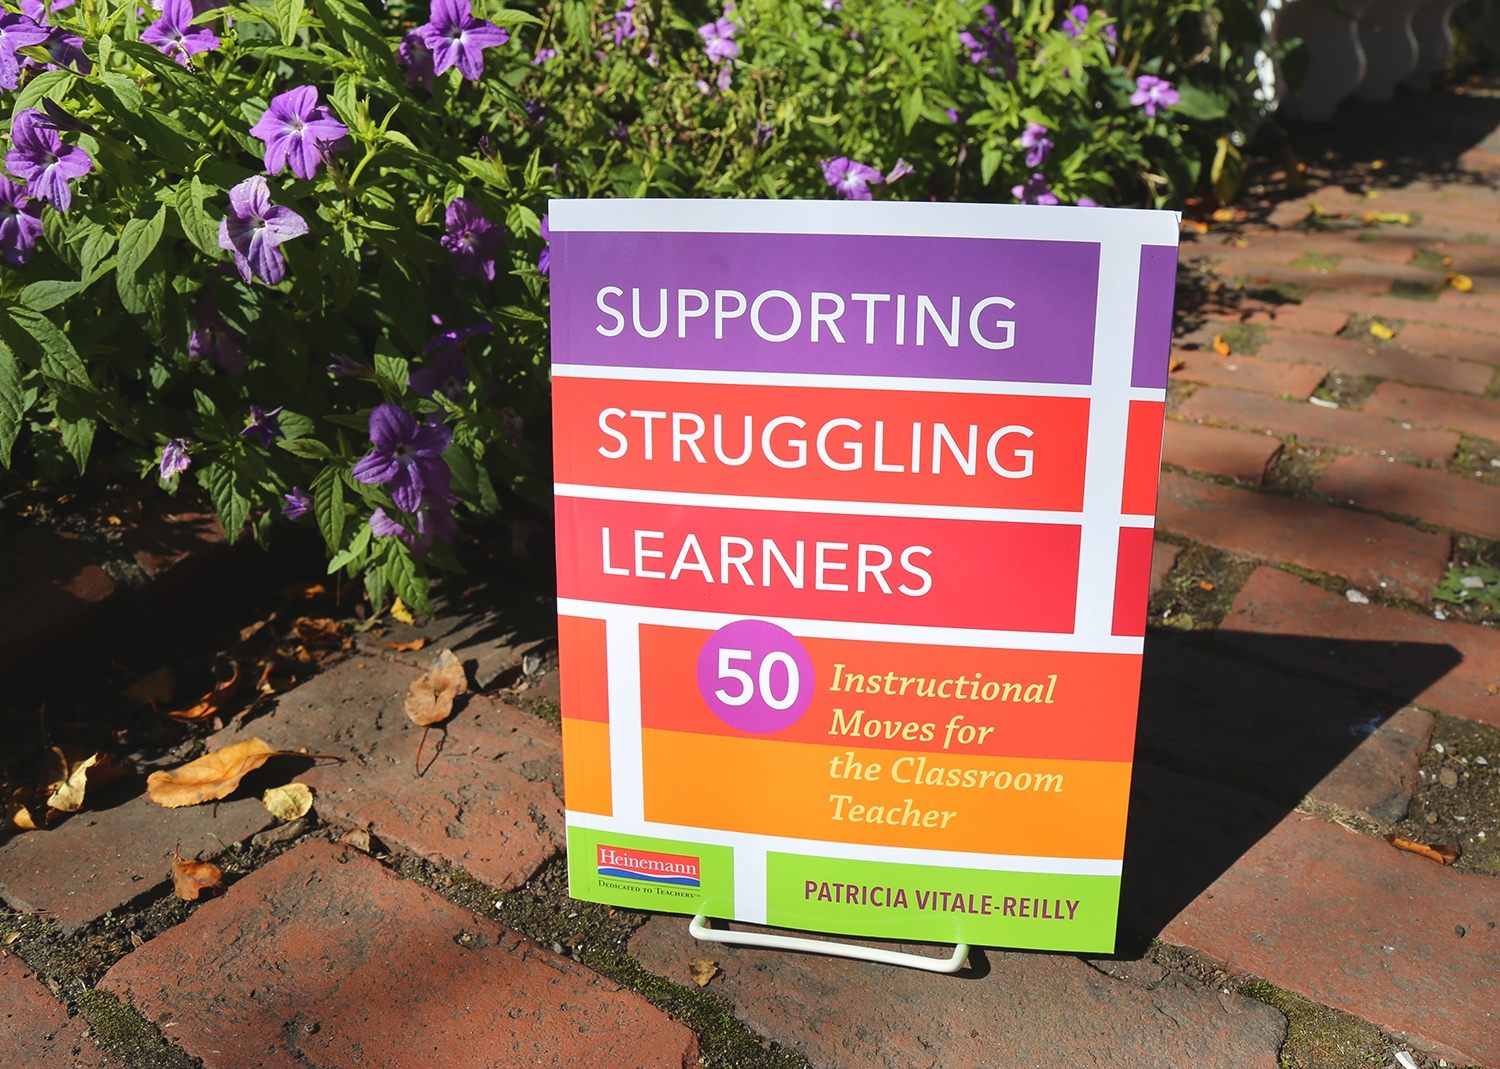 Who Are Struggling Learners?